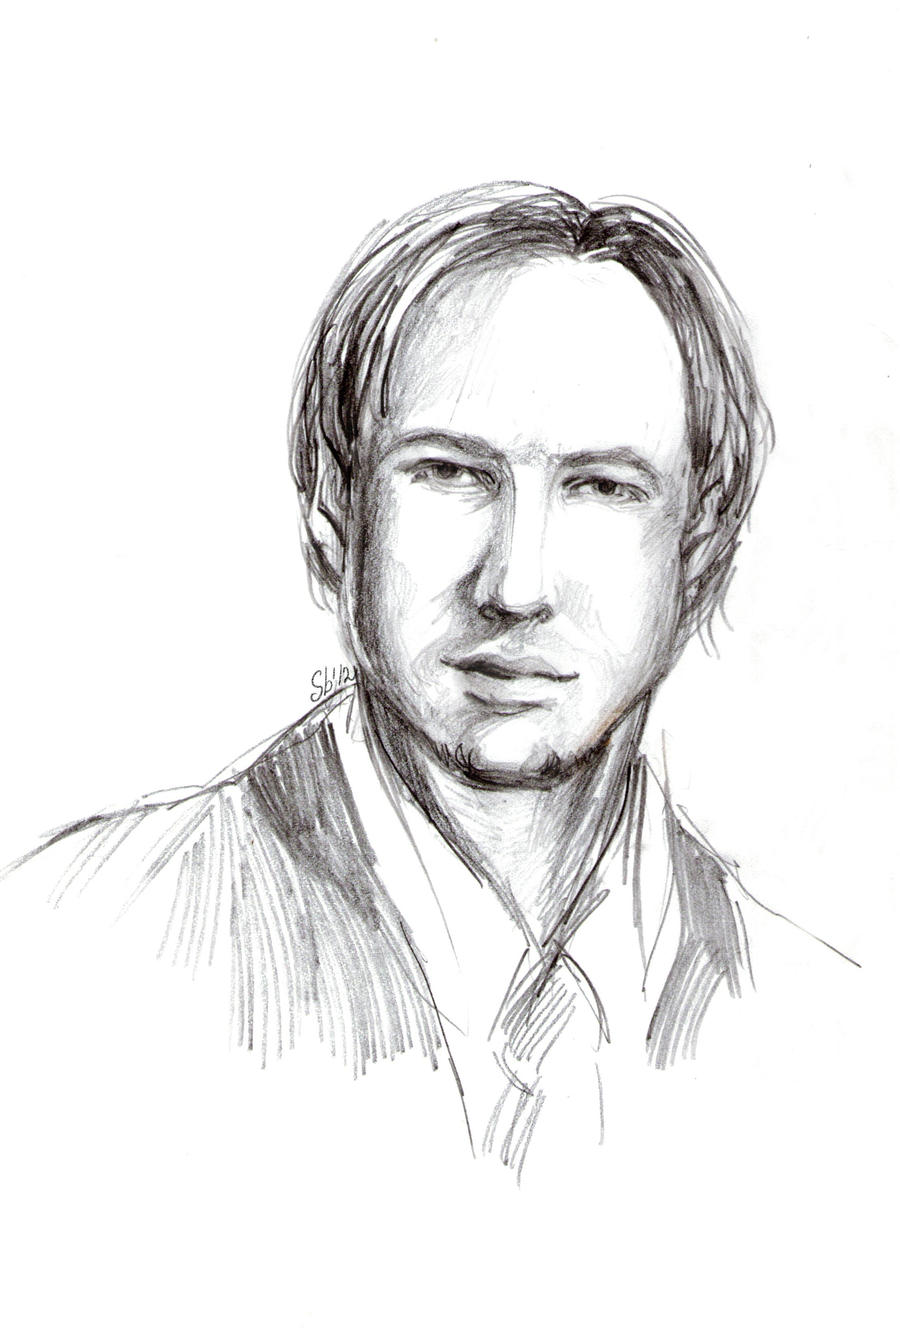 Breivik sketch by Sabellian